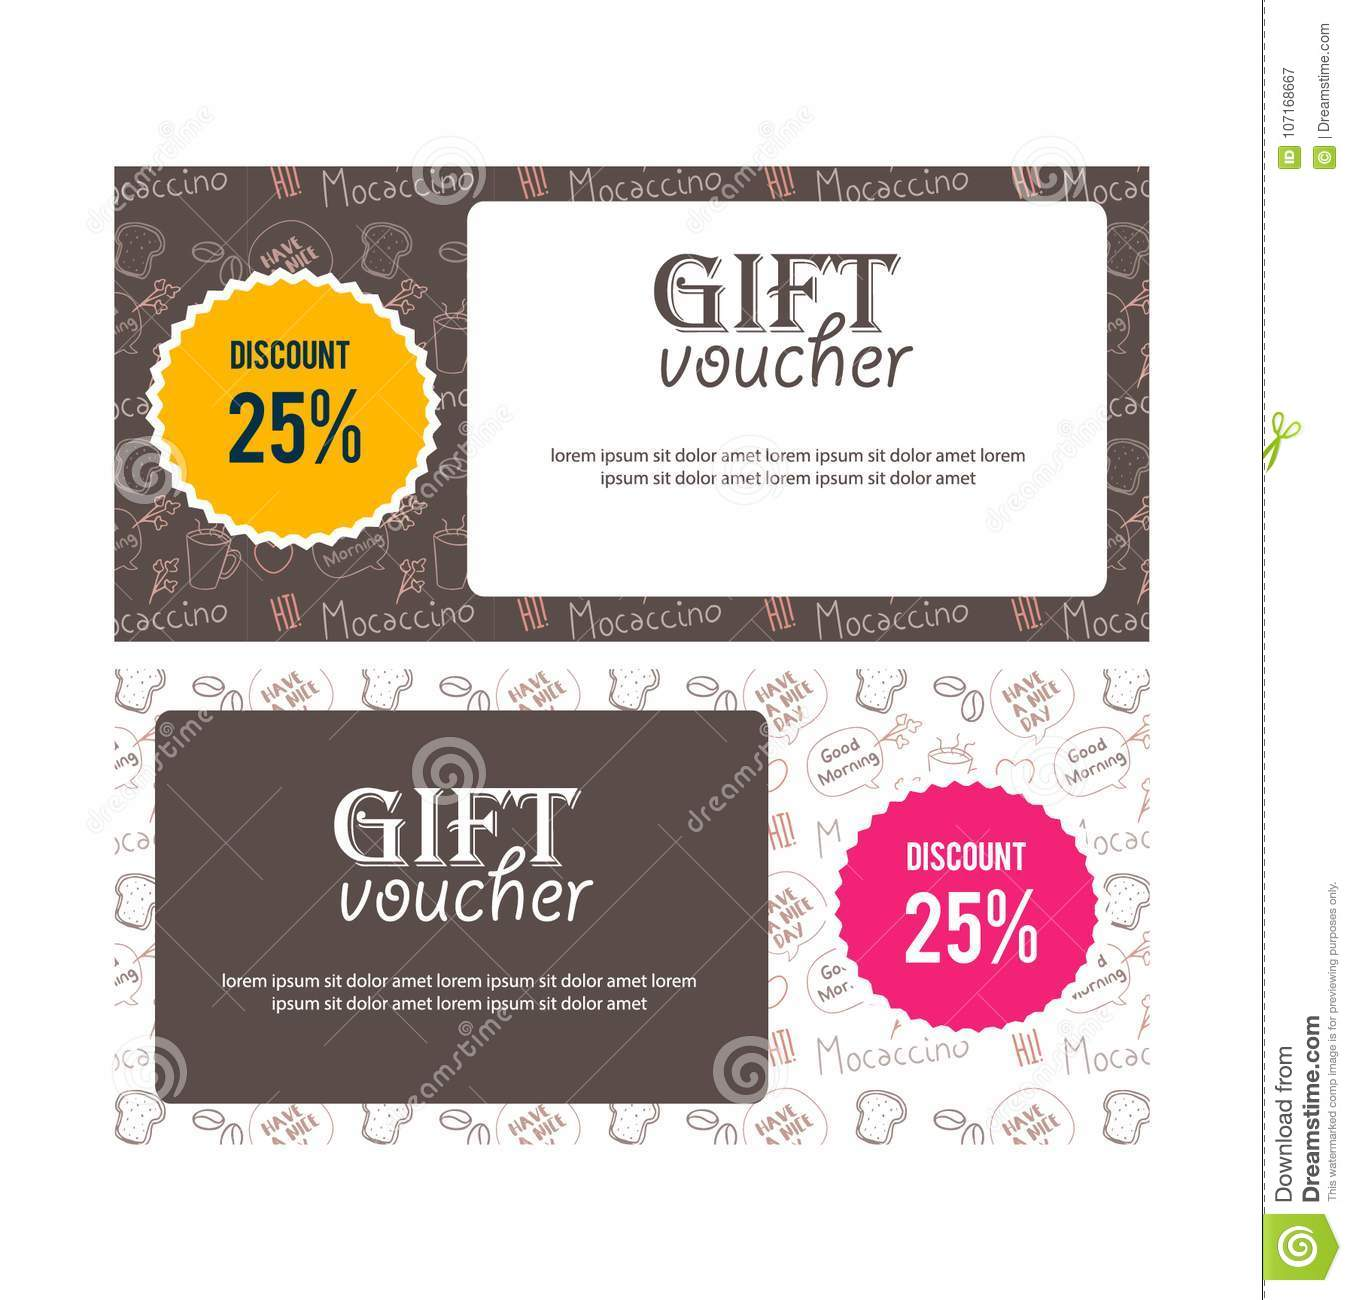 voucher gift banner illustration for restaurant or food website coupon voucher placard